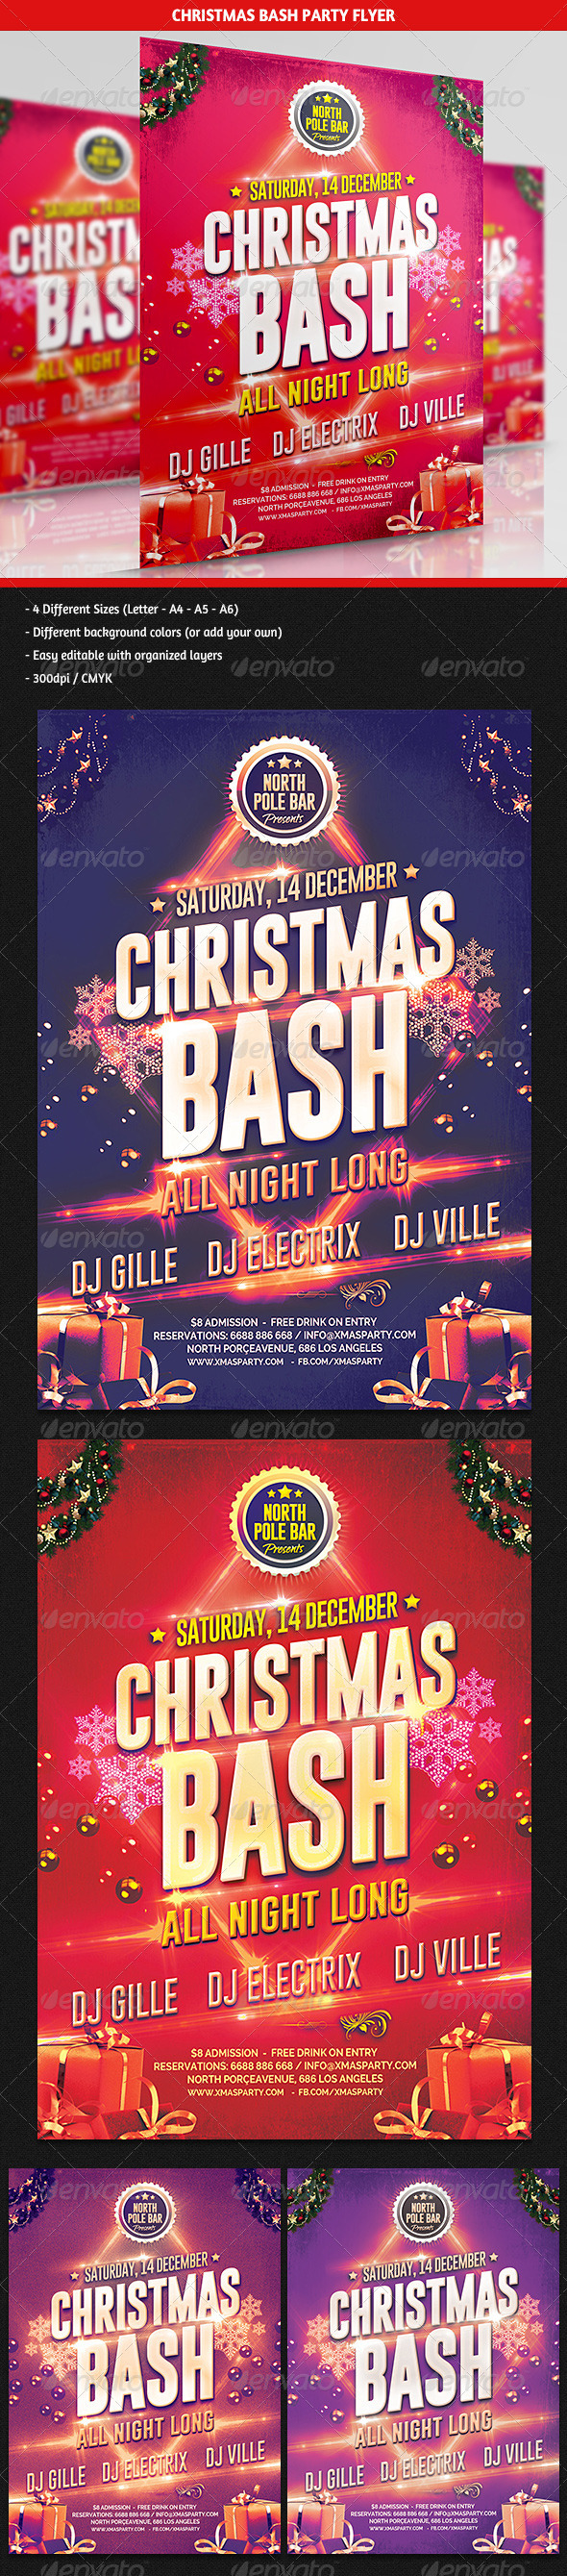 Christmas Bash Party Flyer - Clubs & Parties Events